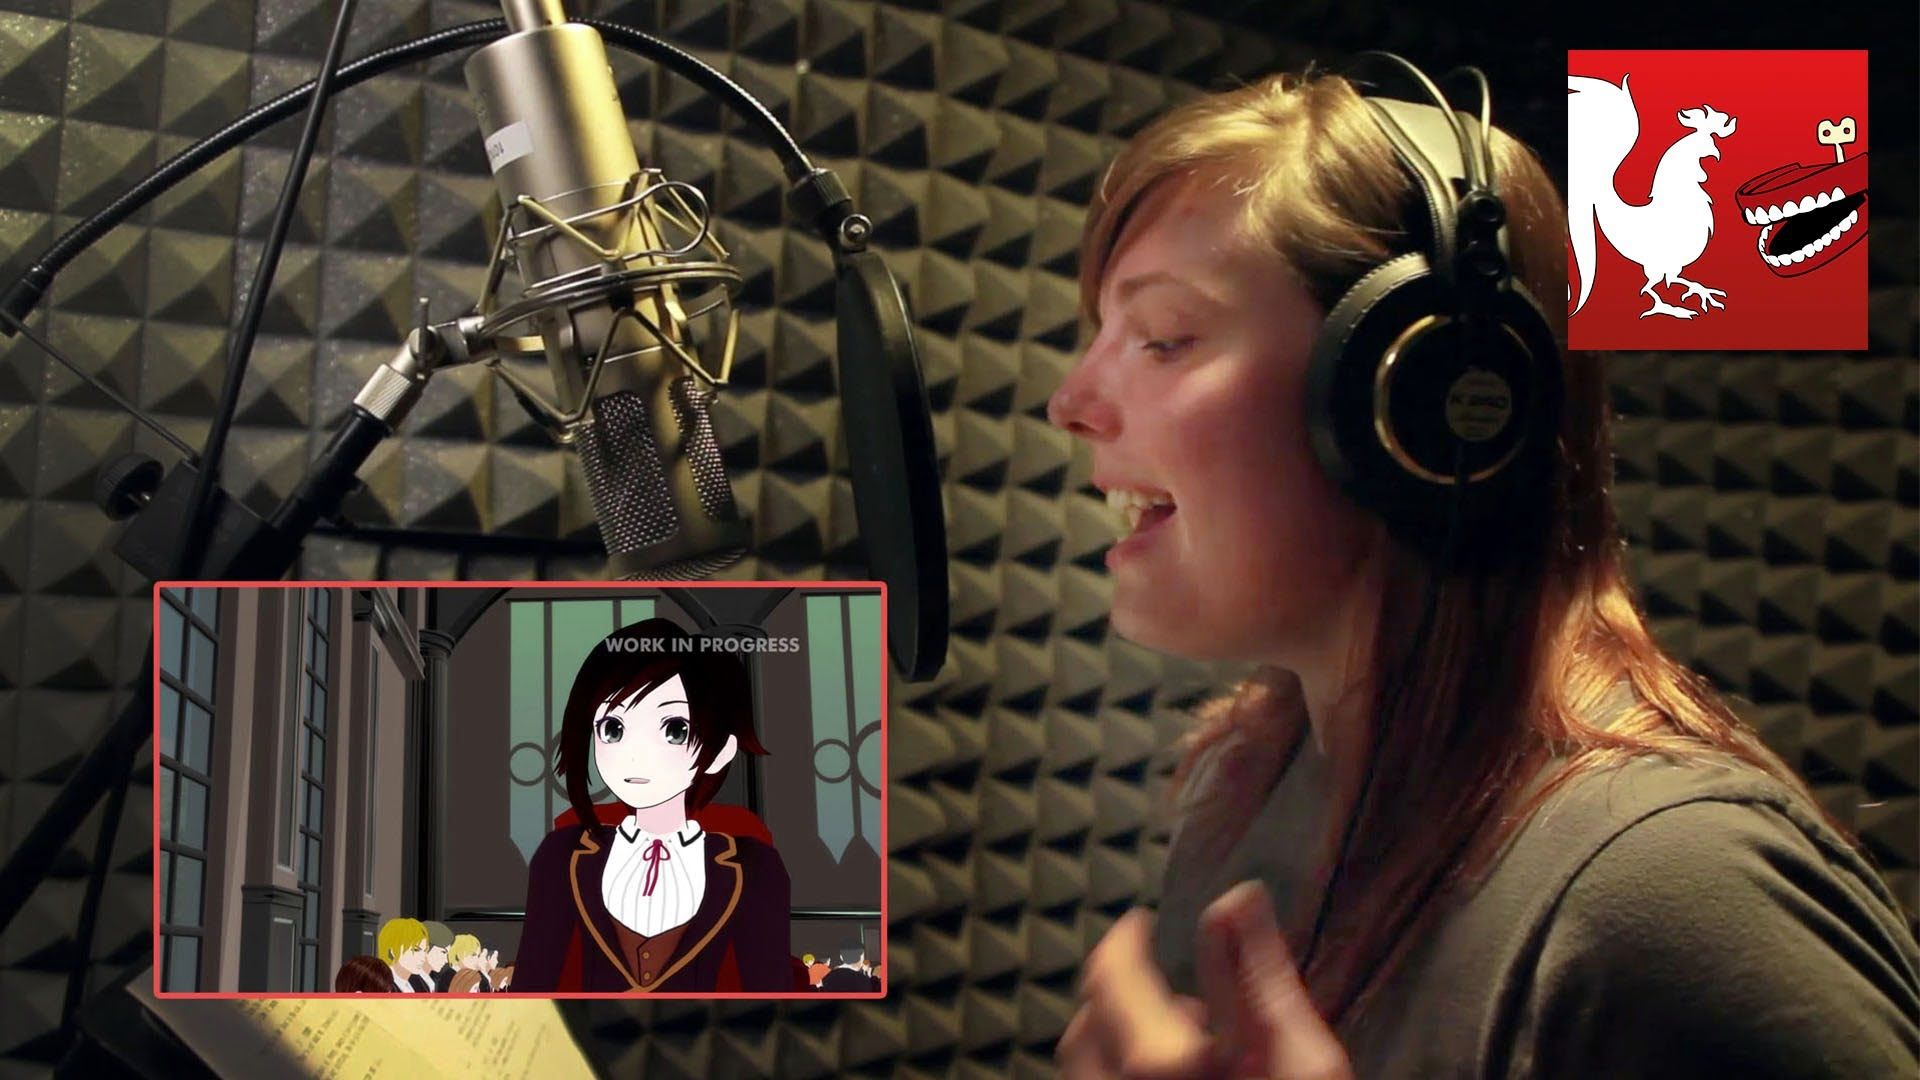 #RWBY production video with descriptions of anime, motion and capture, other voice actors and of course #JessicaNigri